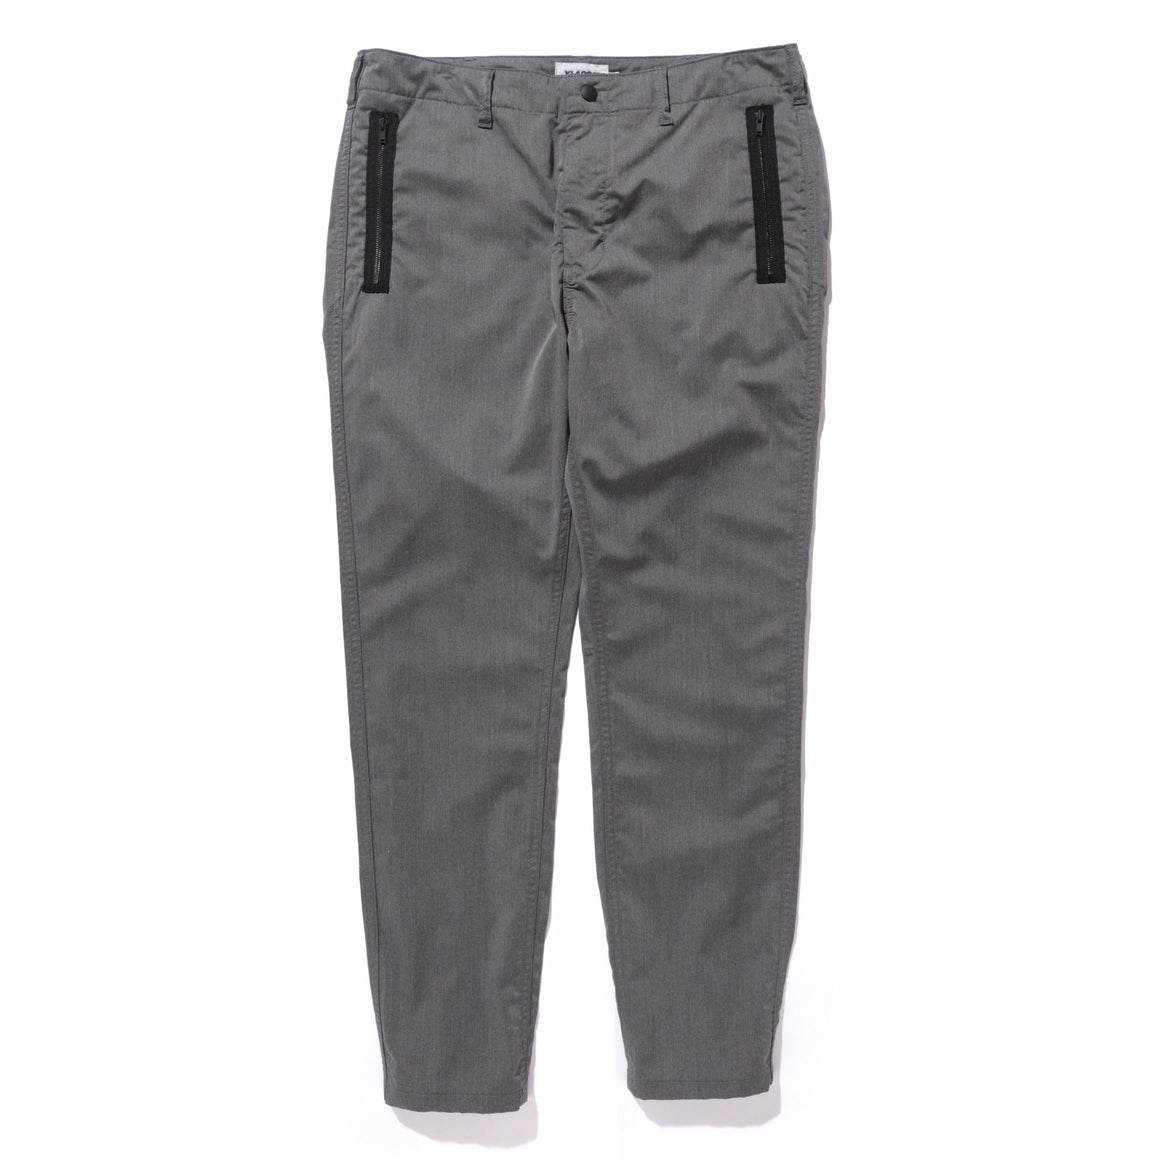 SLIM ZIPPED PANT - X-Large Clothing